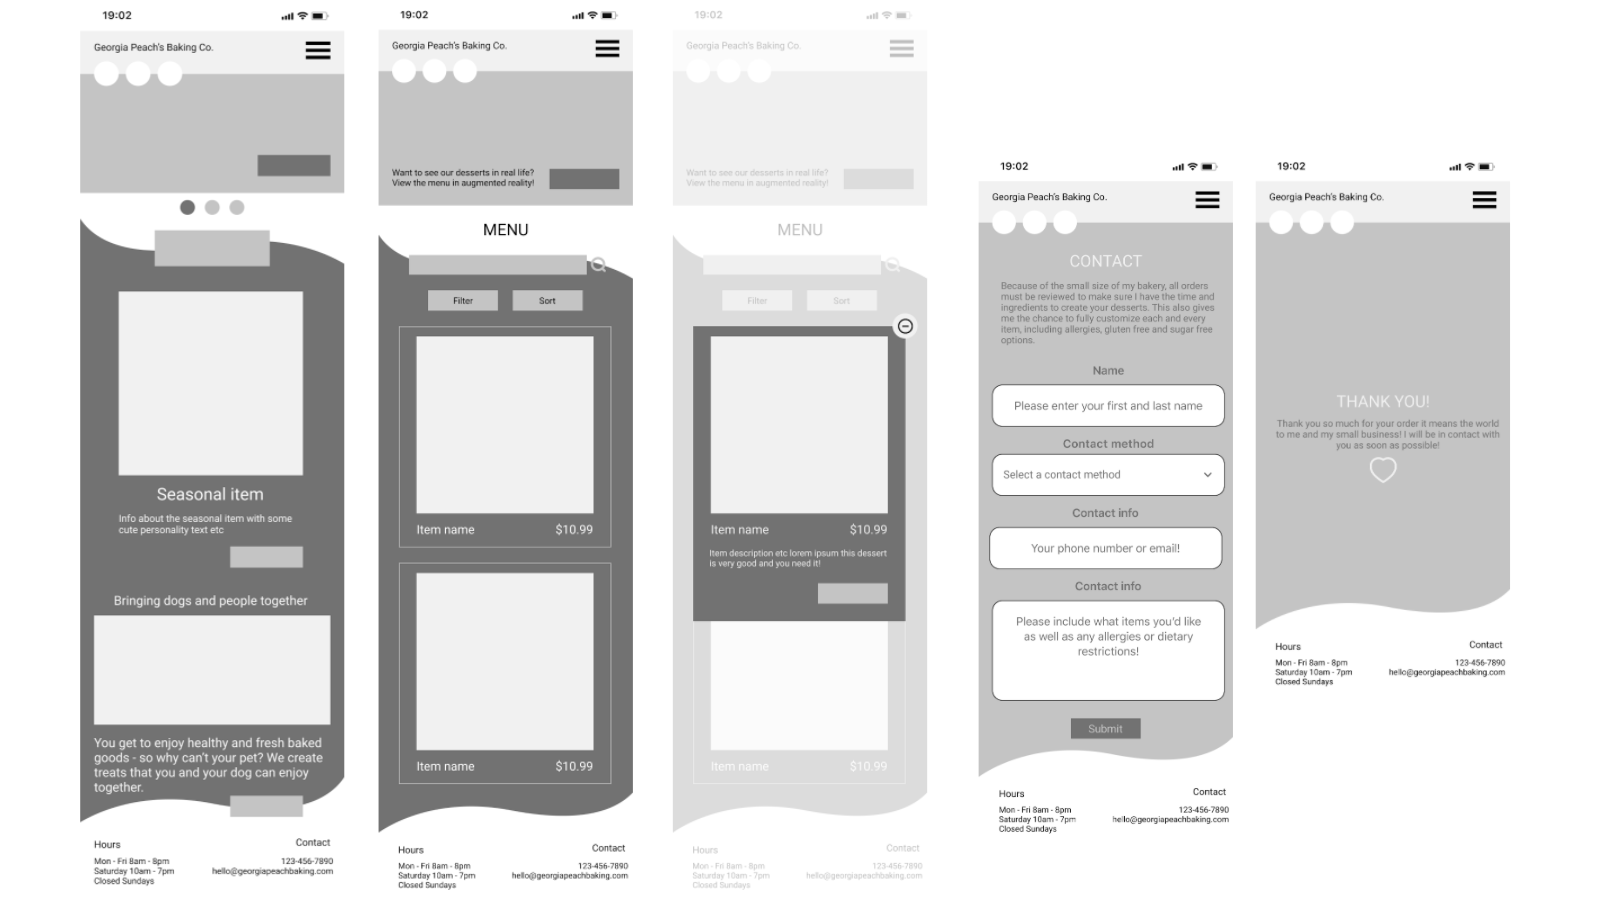 Grayscale wireframes showing the home page, menu, item details, order form and thank you screens